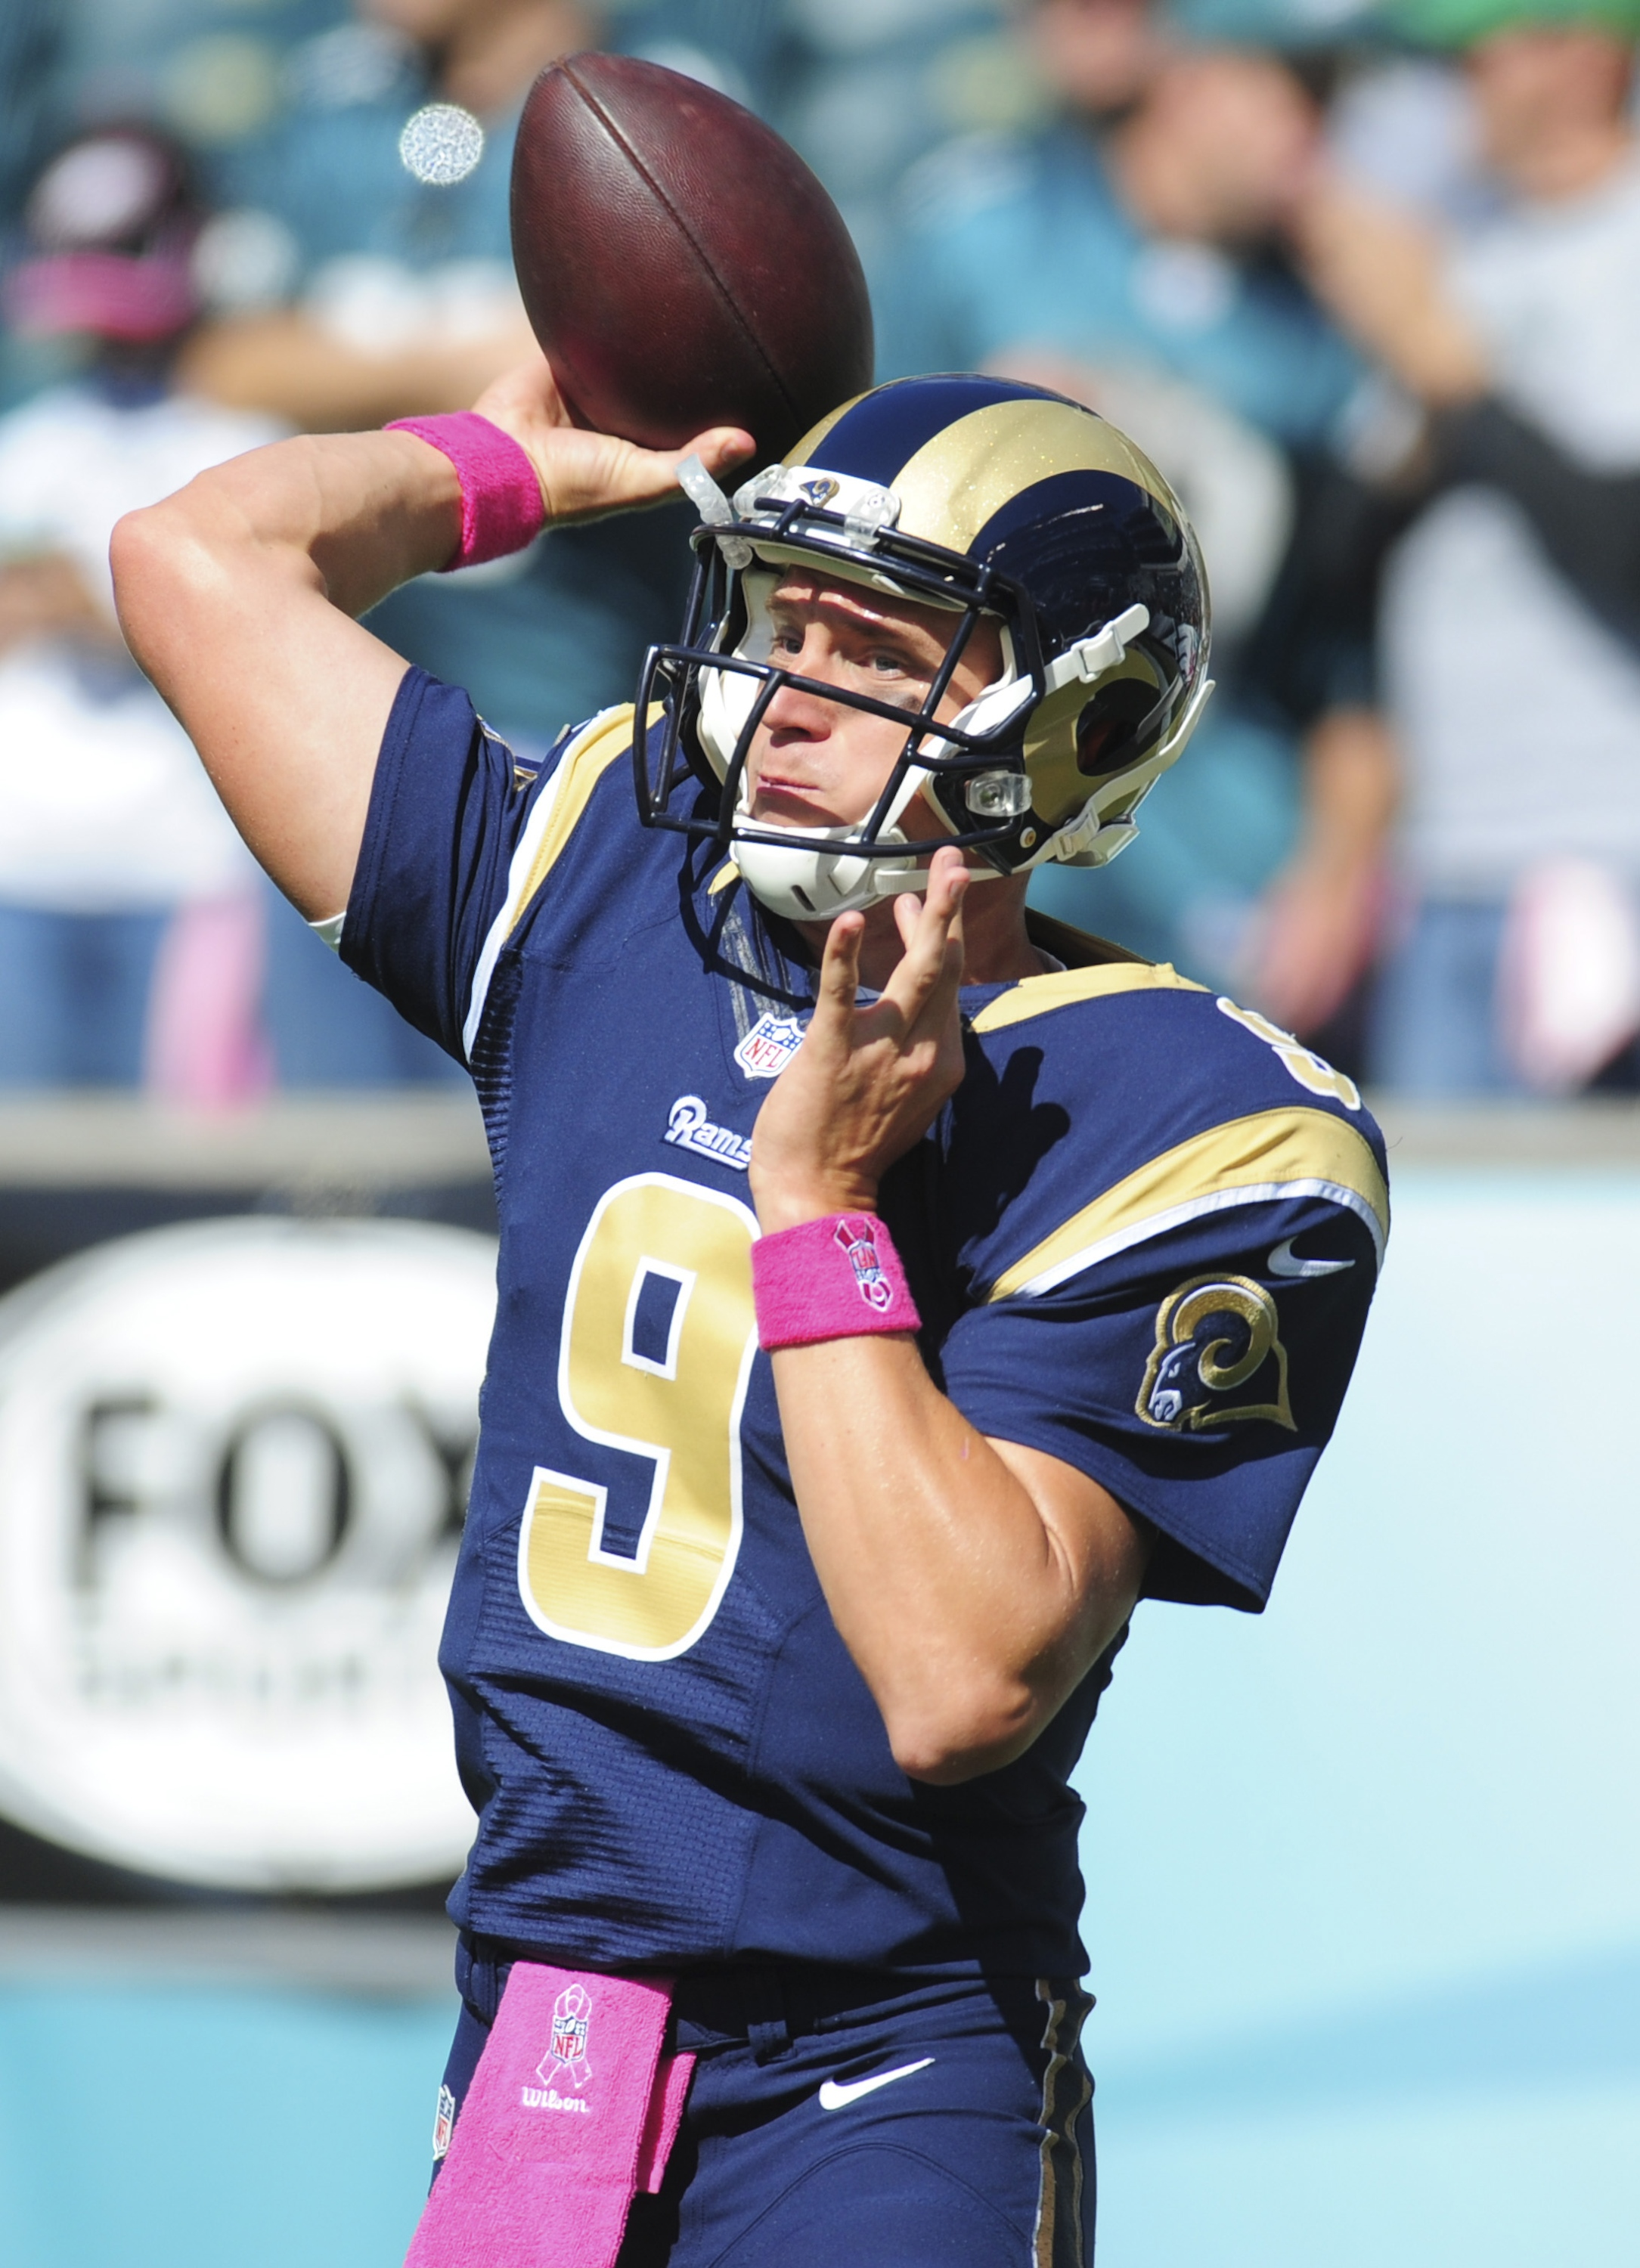 Austin Davis, the latest QB to shred the Eagles D (Evan Habeeb/Getty Images)